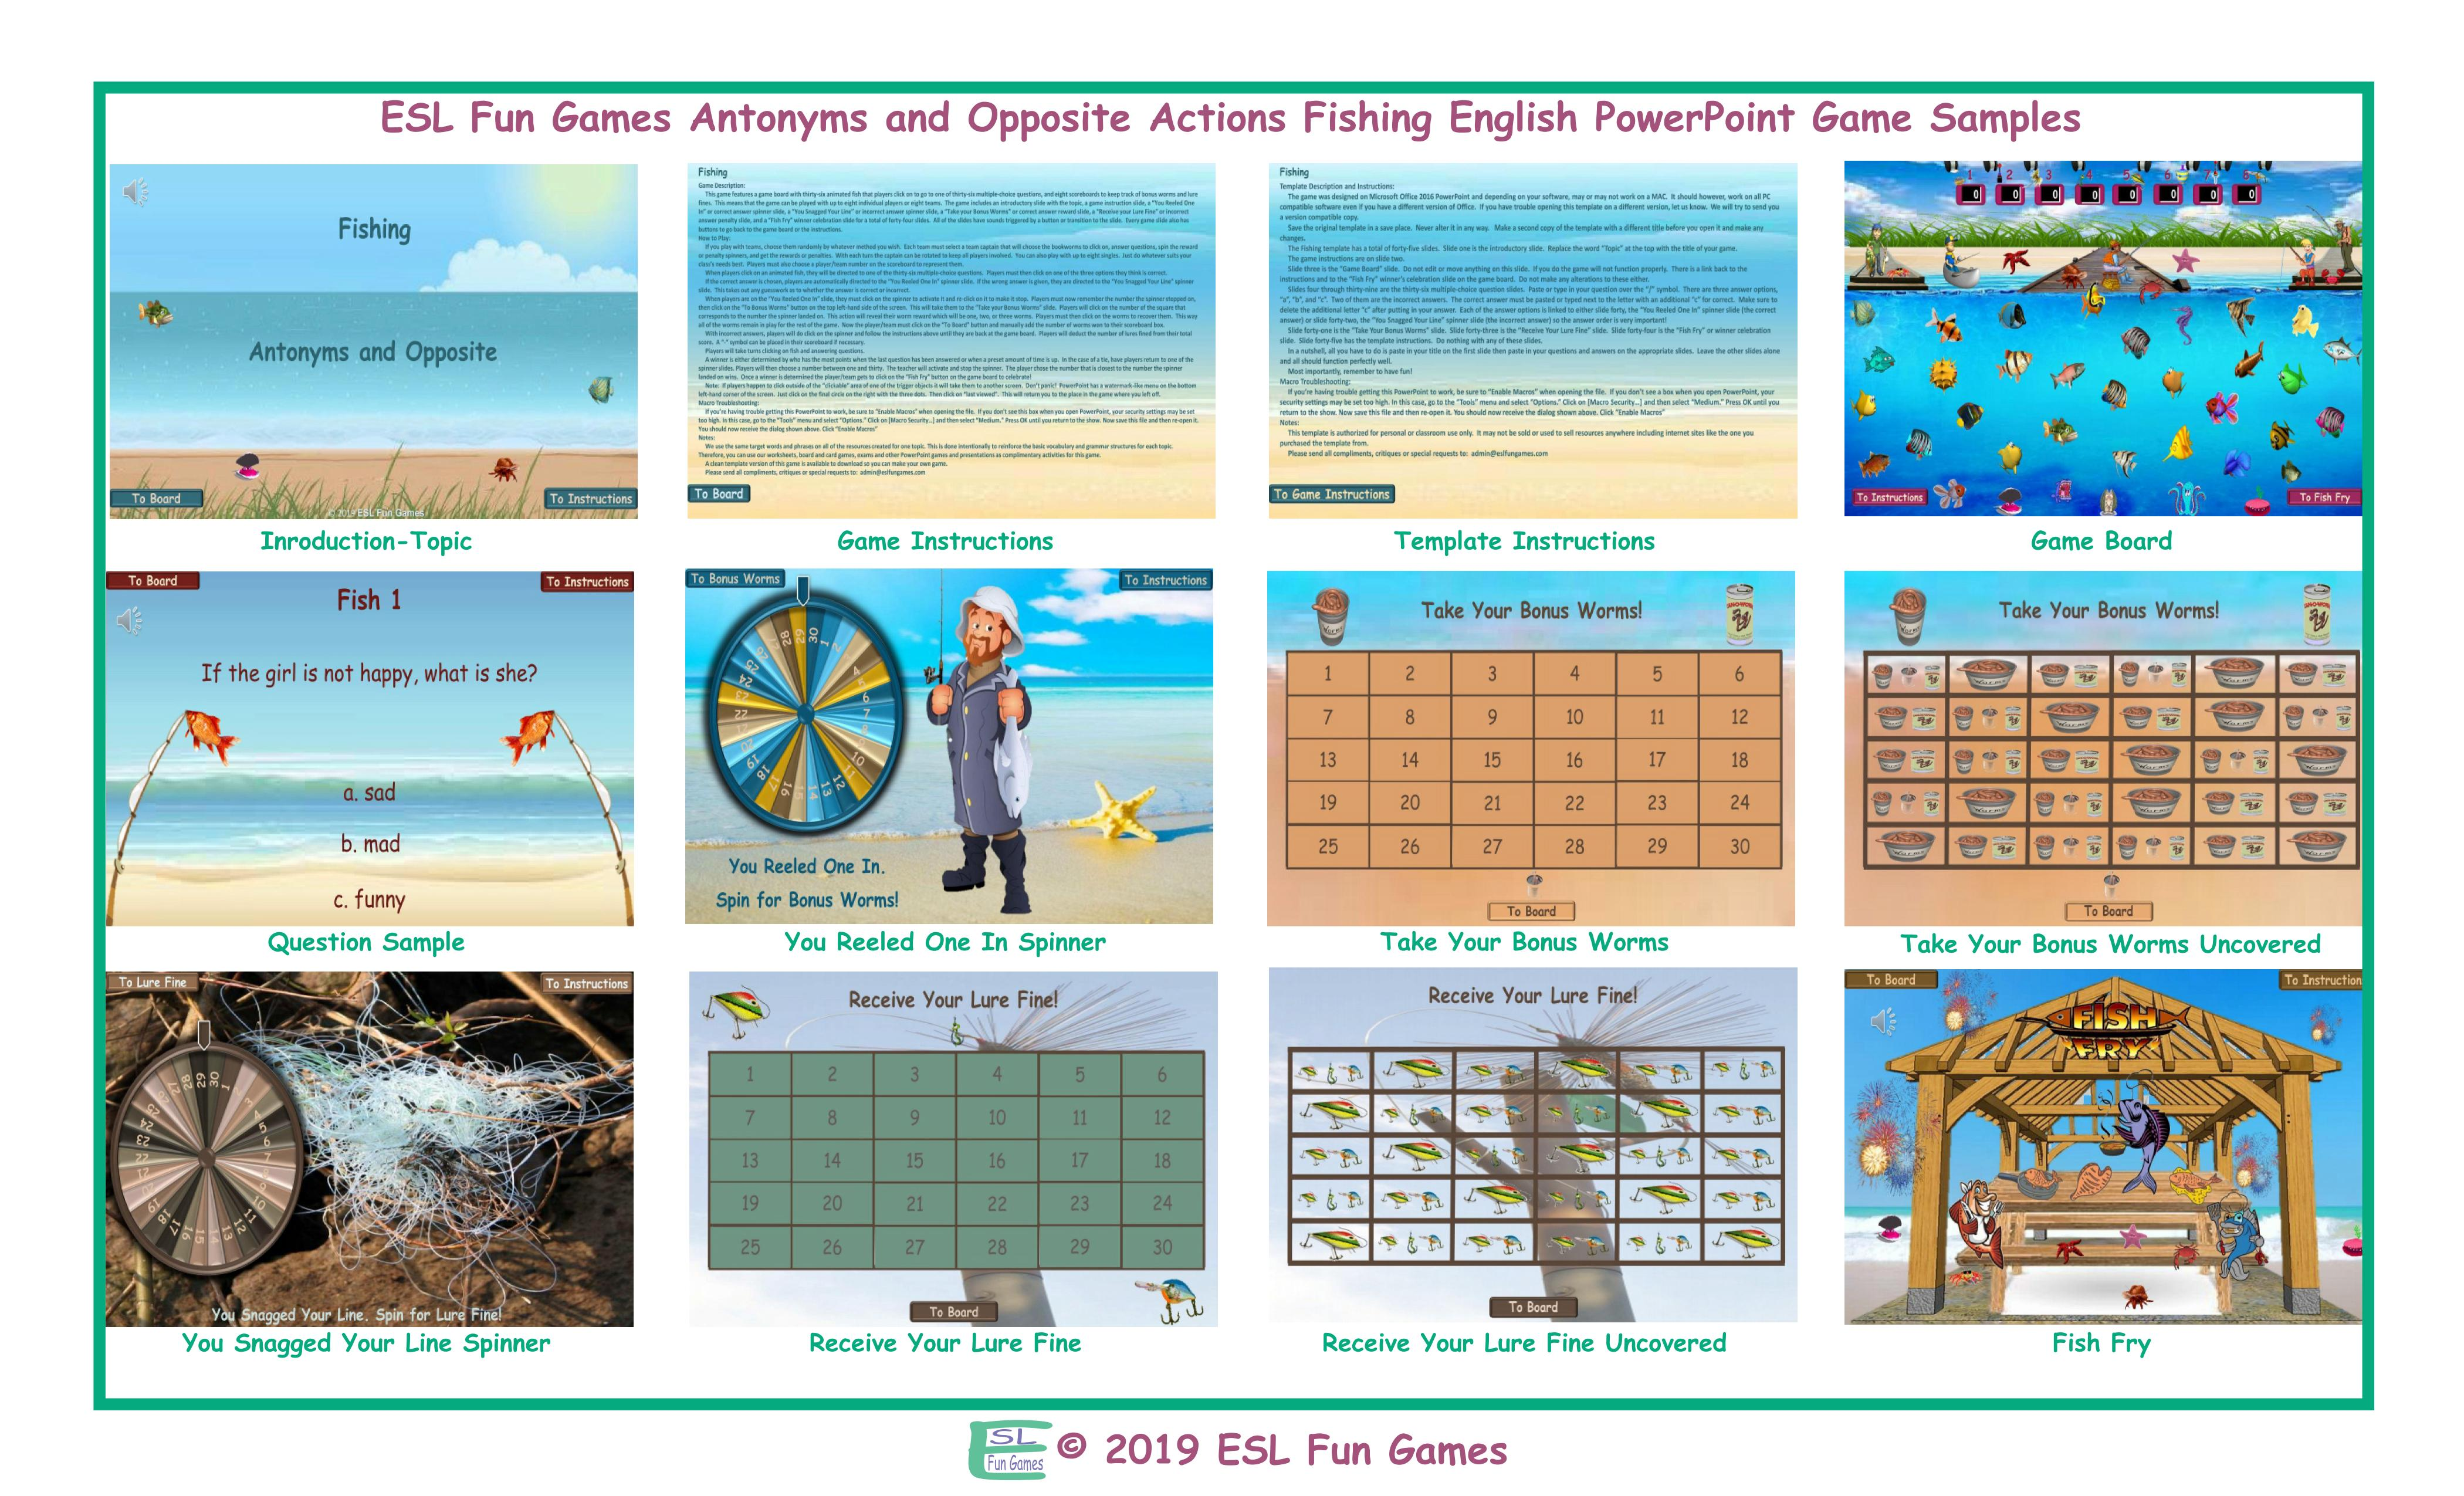 Antonyms and Opposite Actions Fishing Interactive English PowerPoint Game